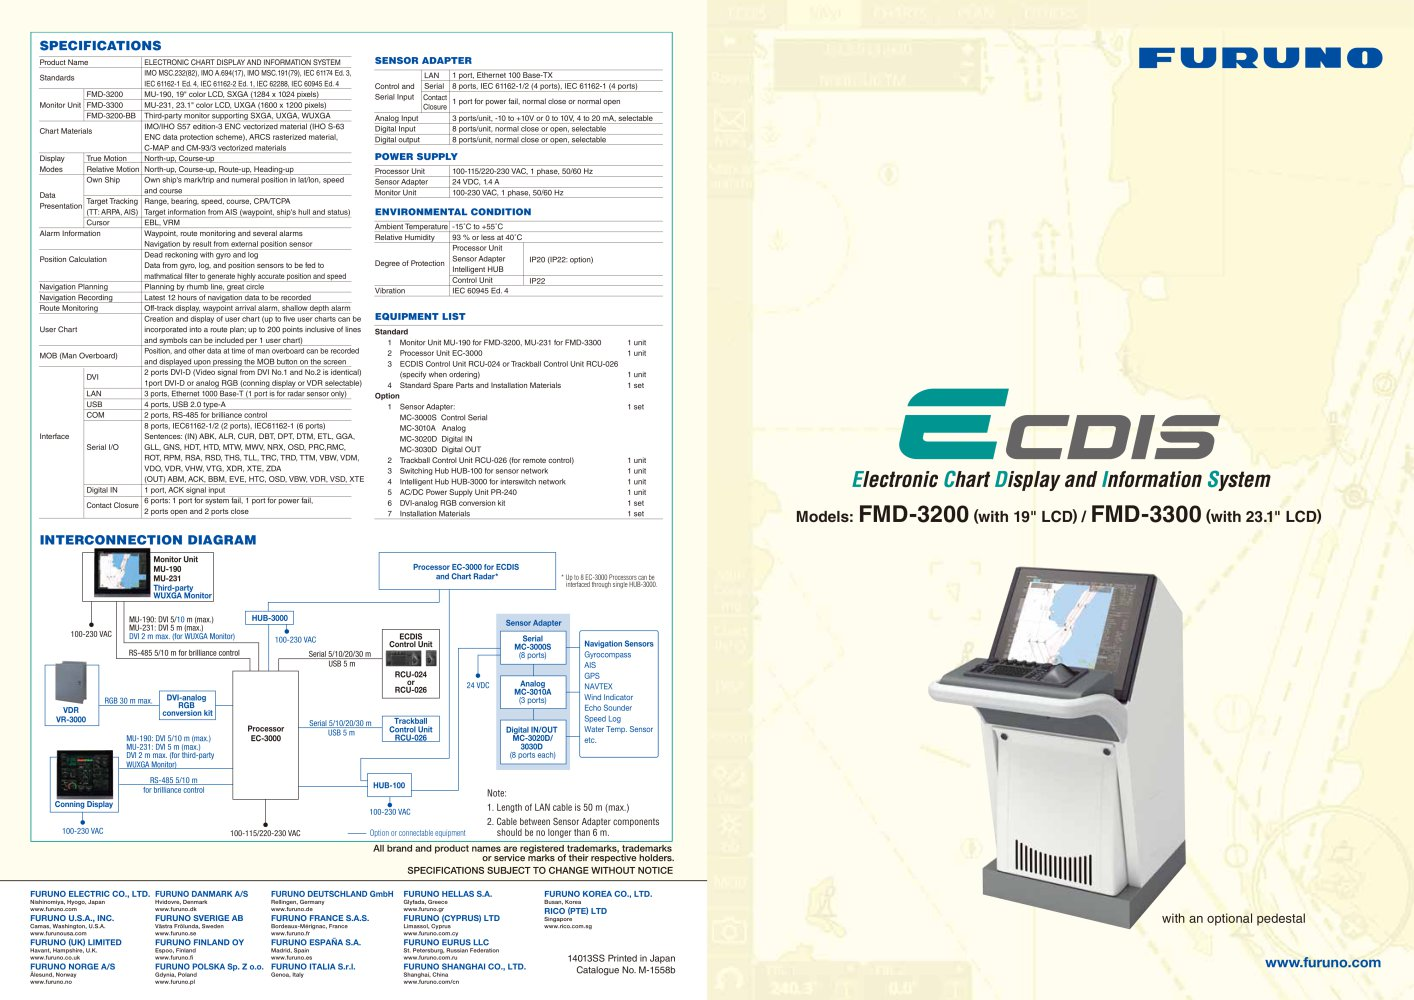 FMD-3200 / 3300 - 1 / 4 Pages